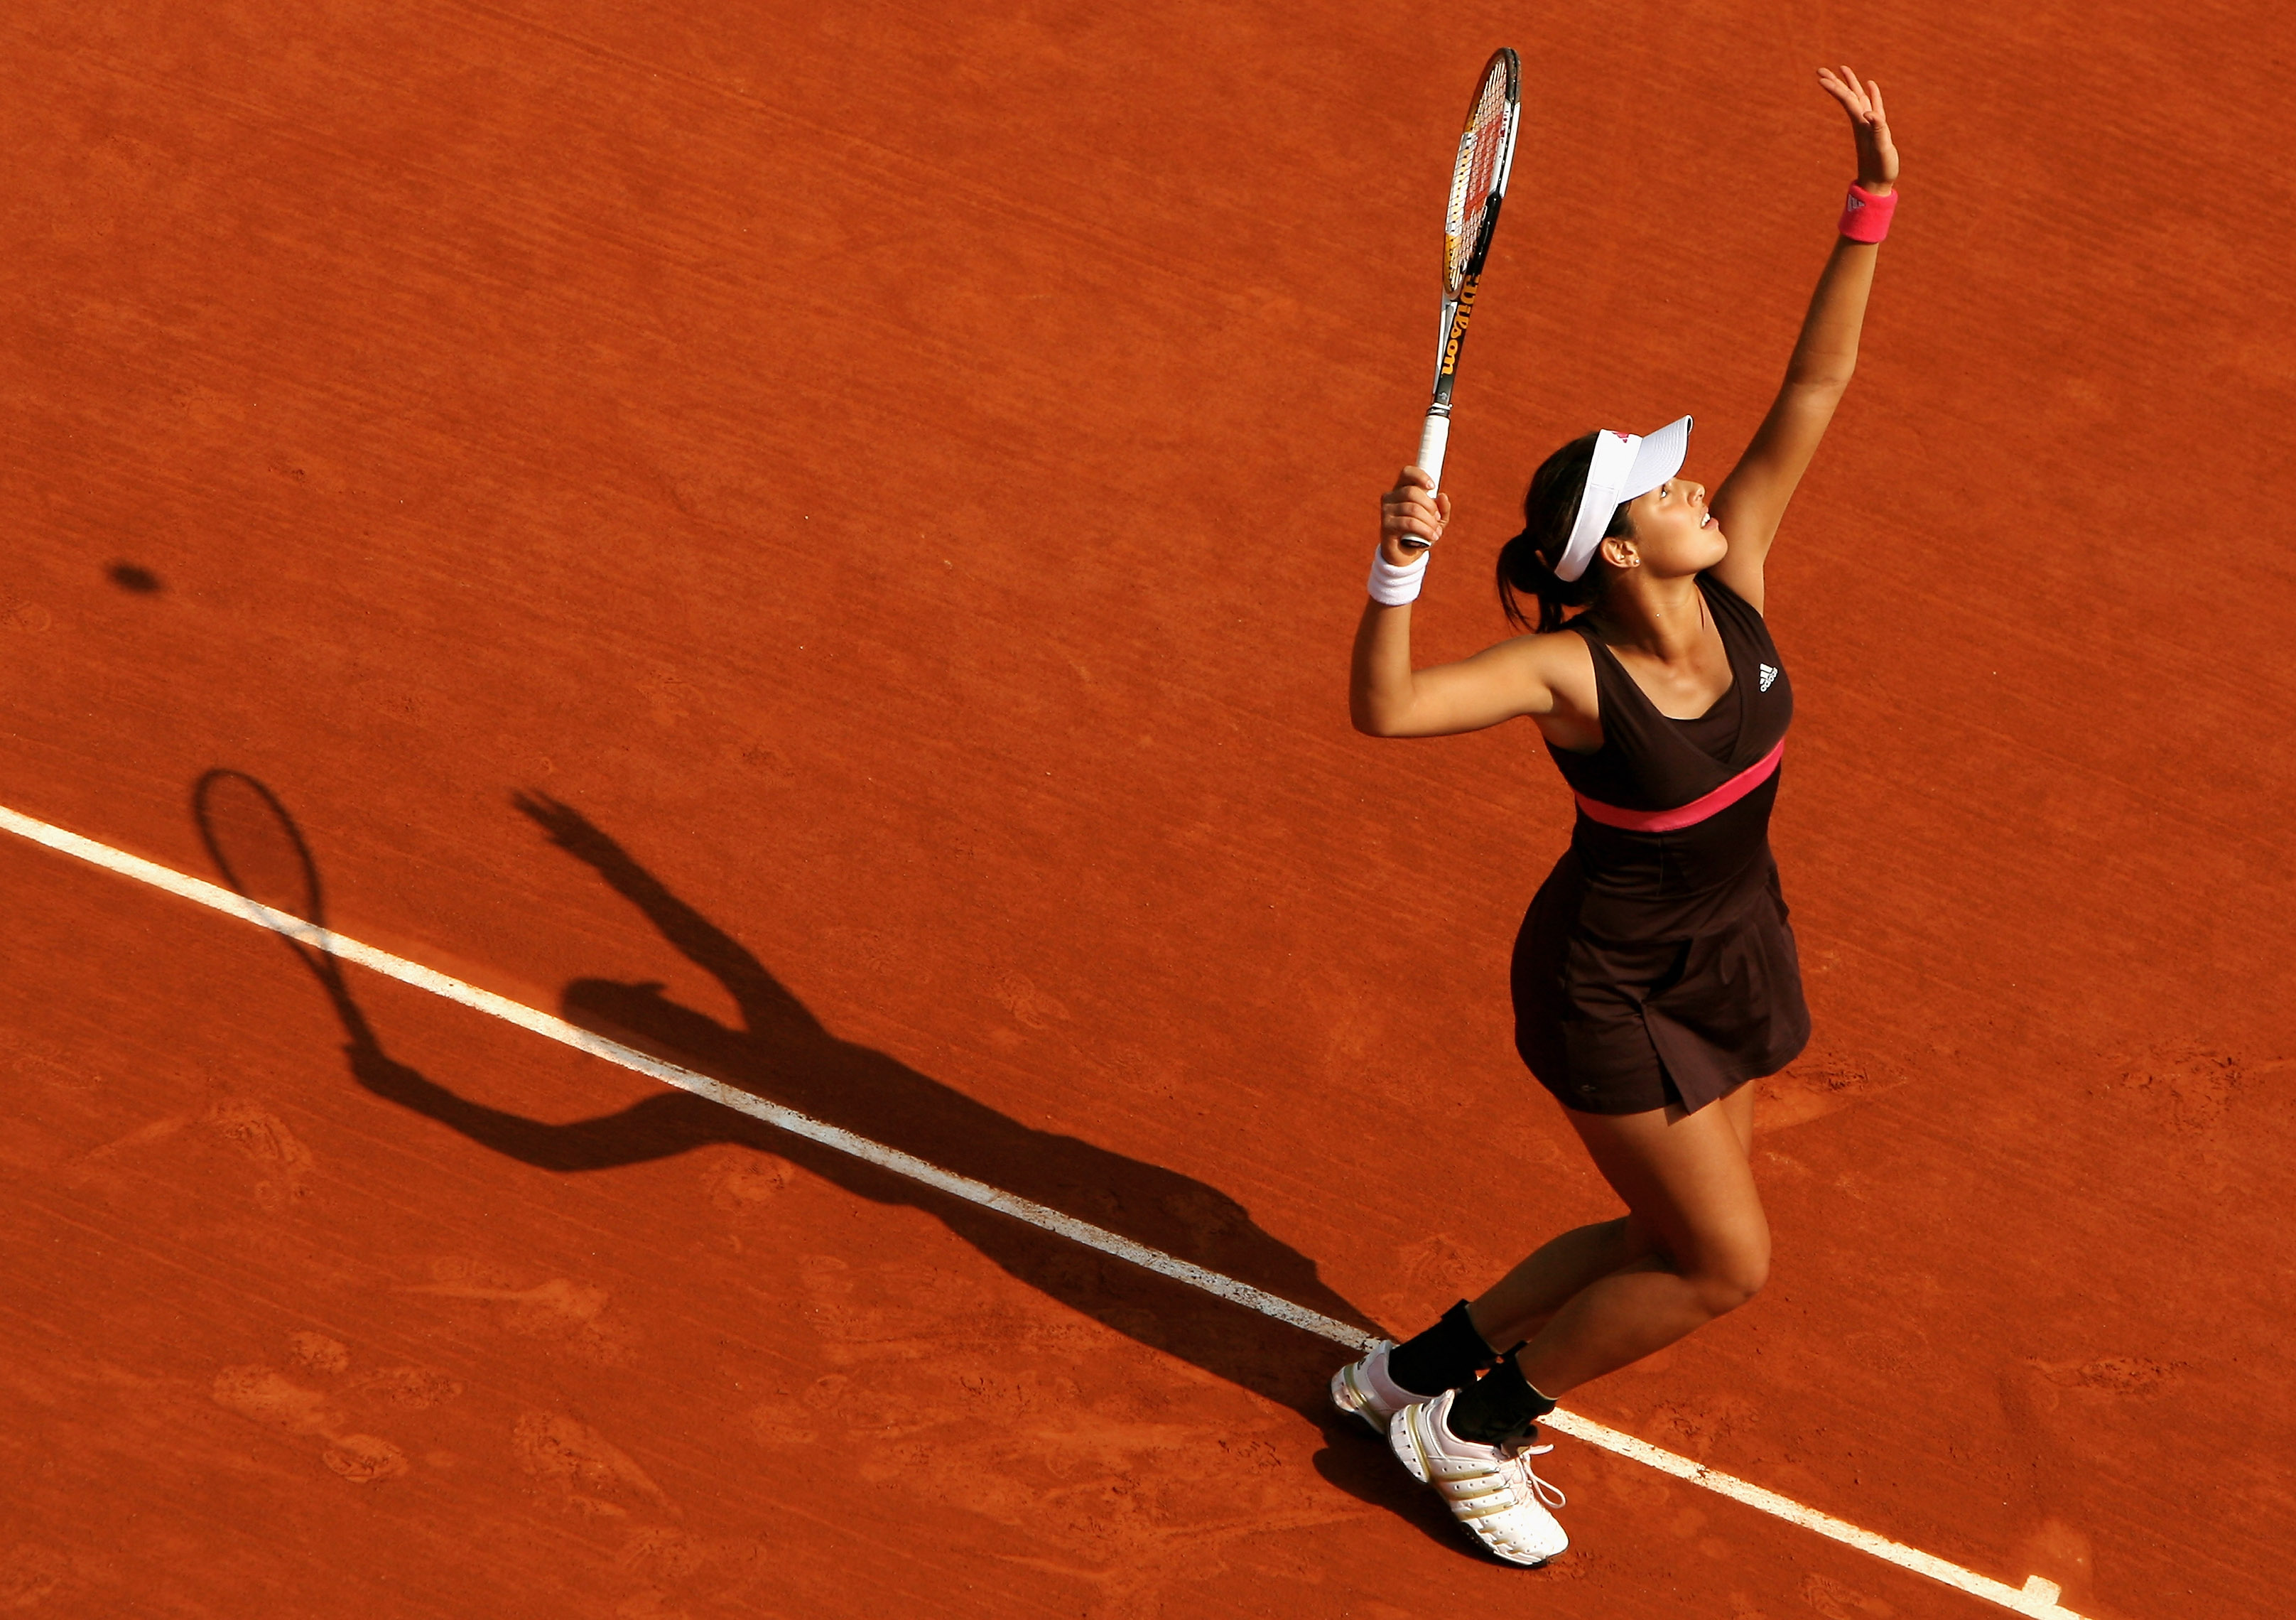 Ivanovic's first signature dress, which she wore to en route to her first Slam final at Roland Garros. She lost to Justine Henin in straight sets.